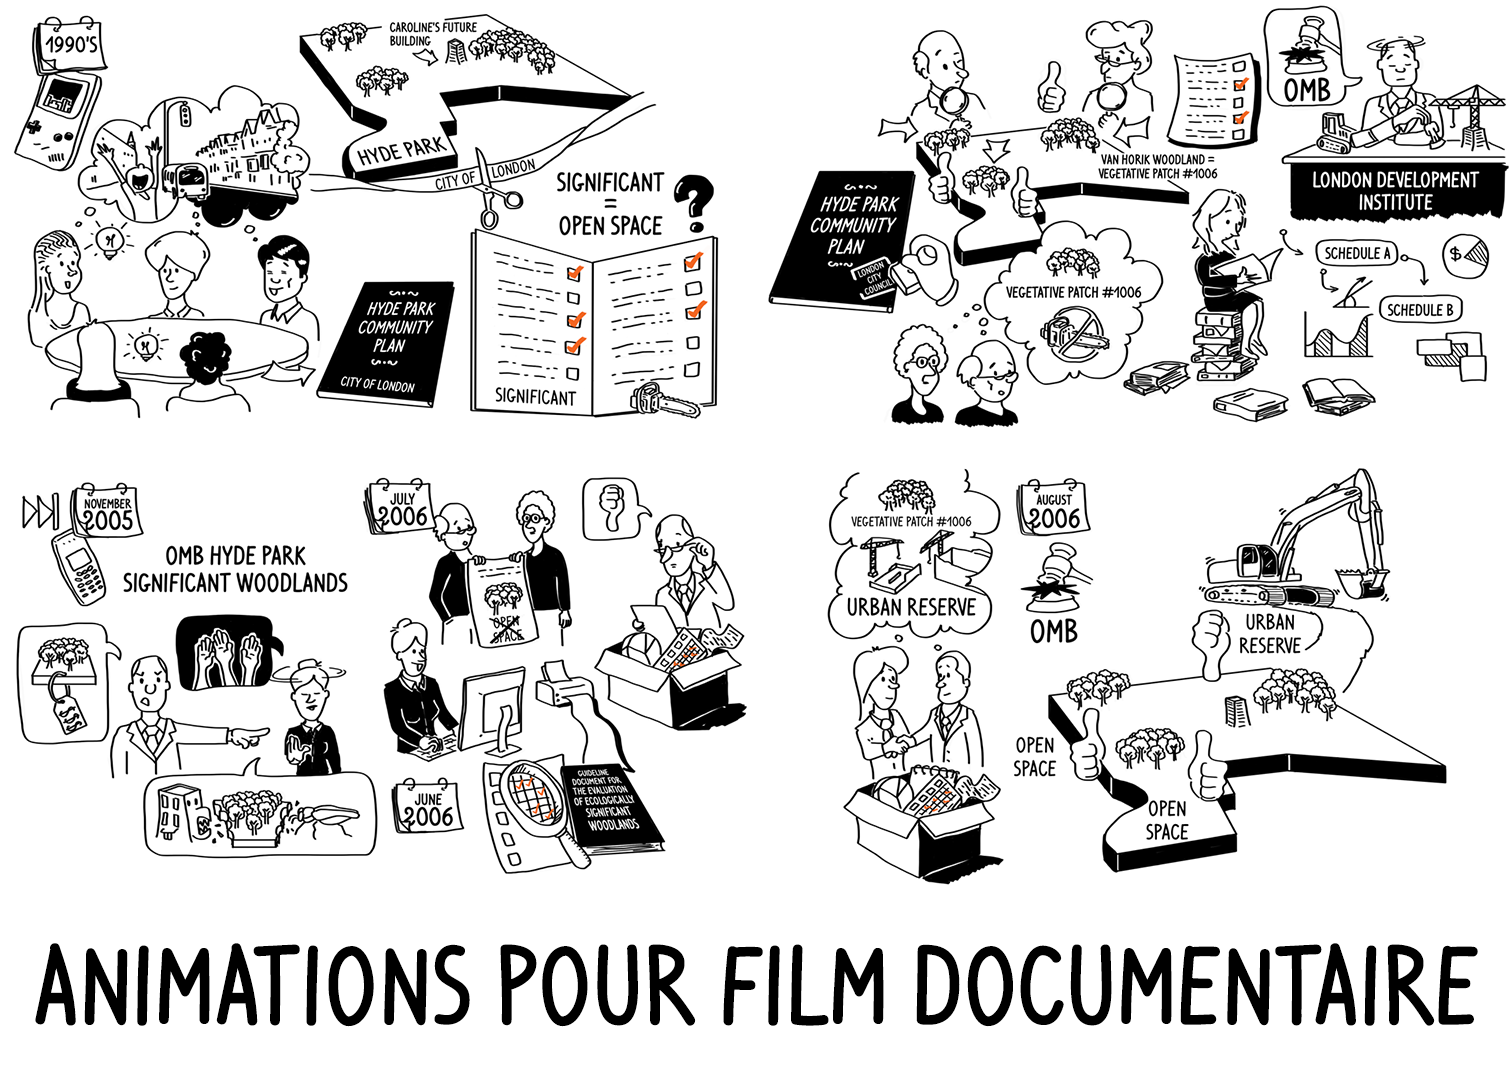 Animations pour film documentaire « Forest City »